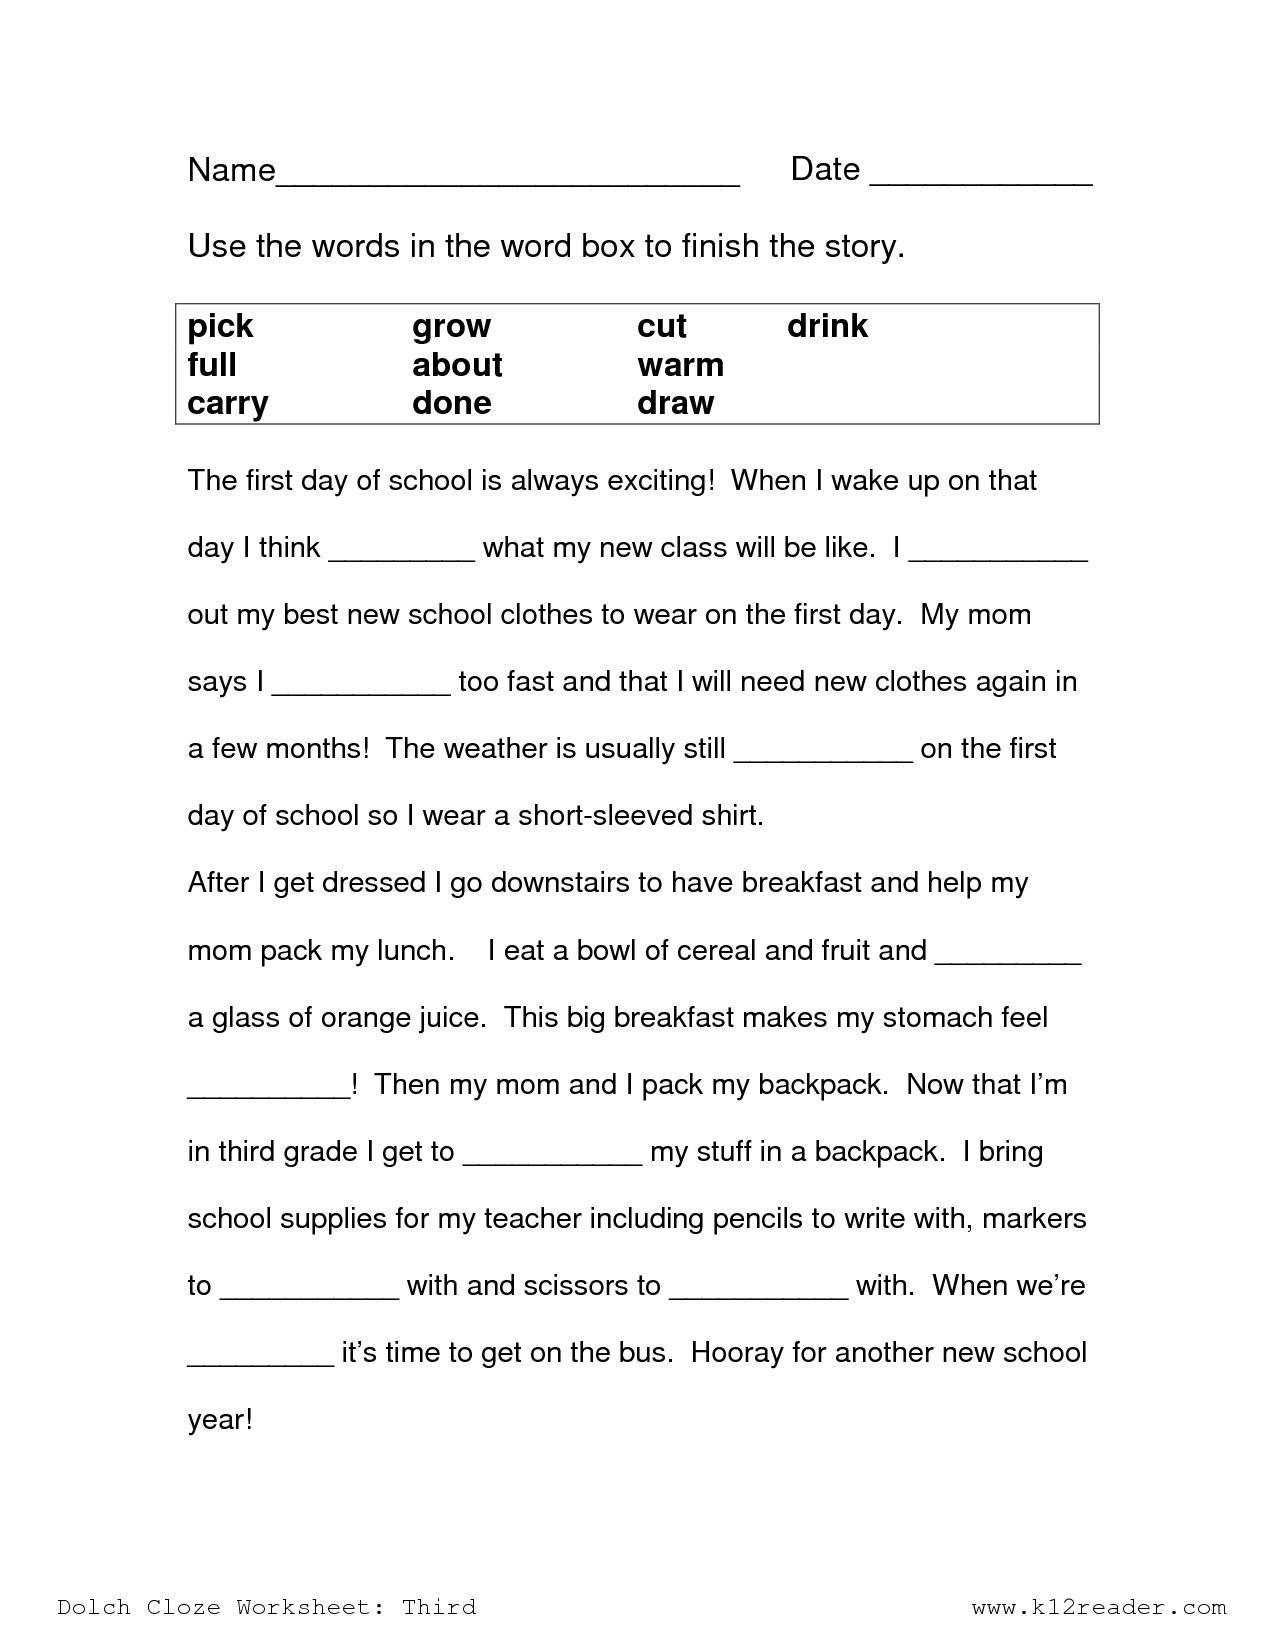 Free Worksheet Free Printable High School Reading Comprehension Worksheets worksheet third grade comprehension activities wosenly free printables reading worksheets middle school multiple choice 13gt images for school